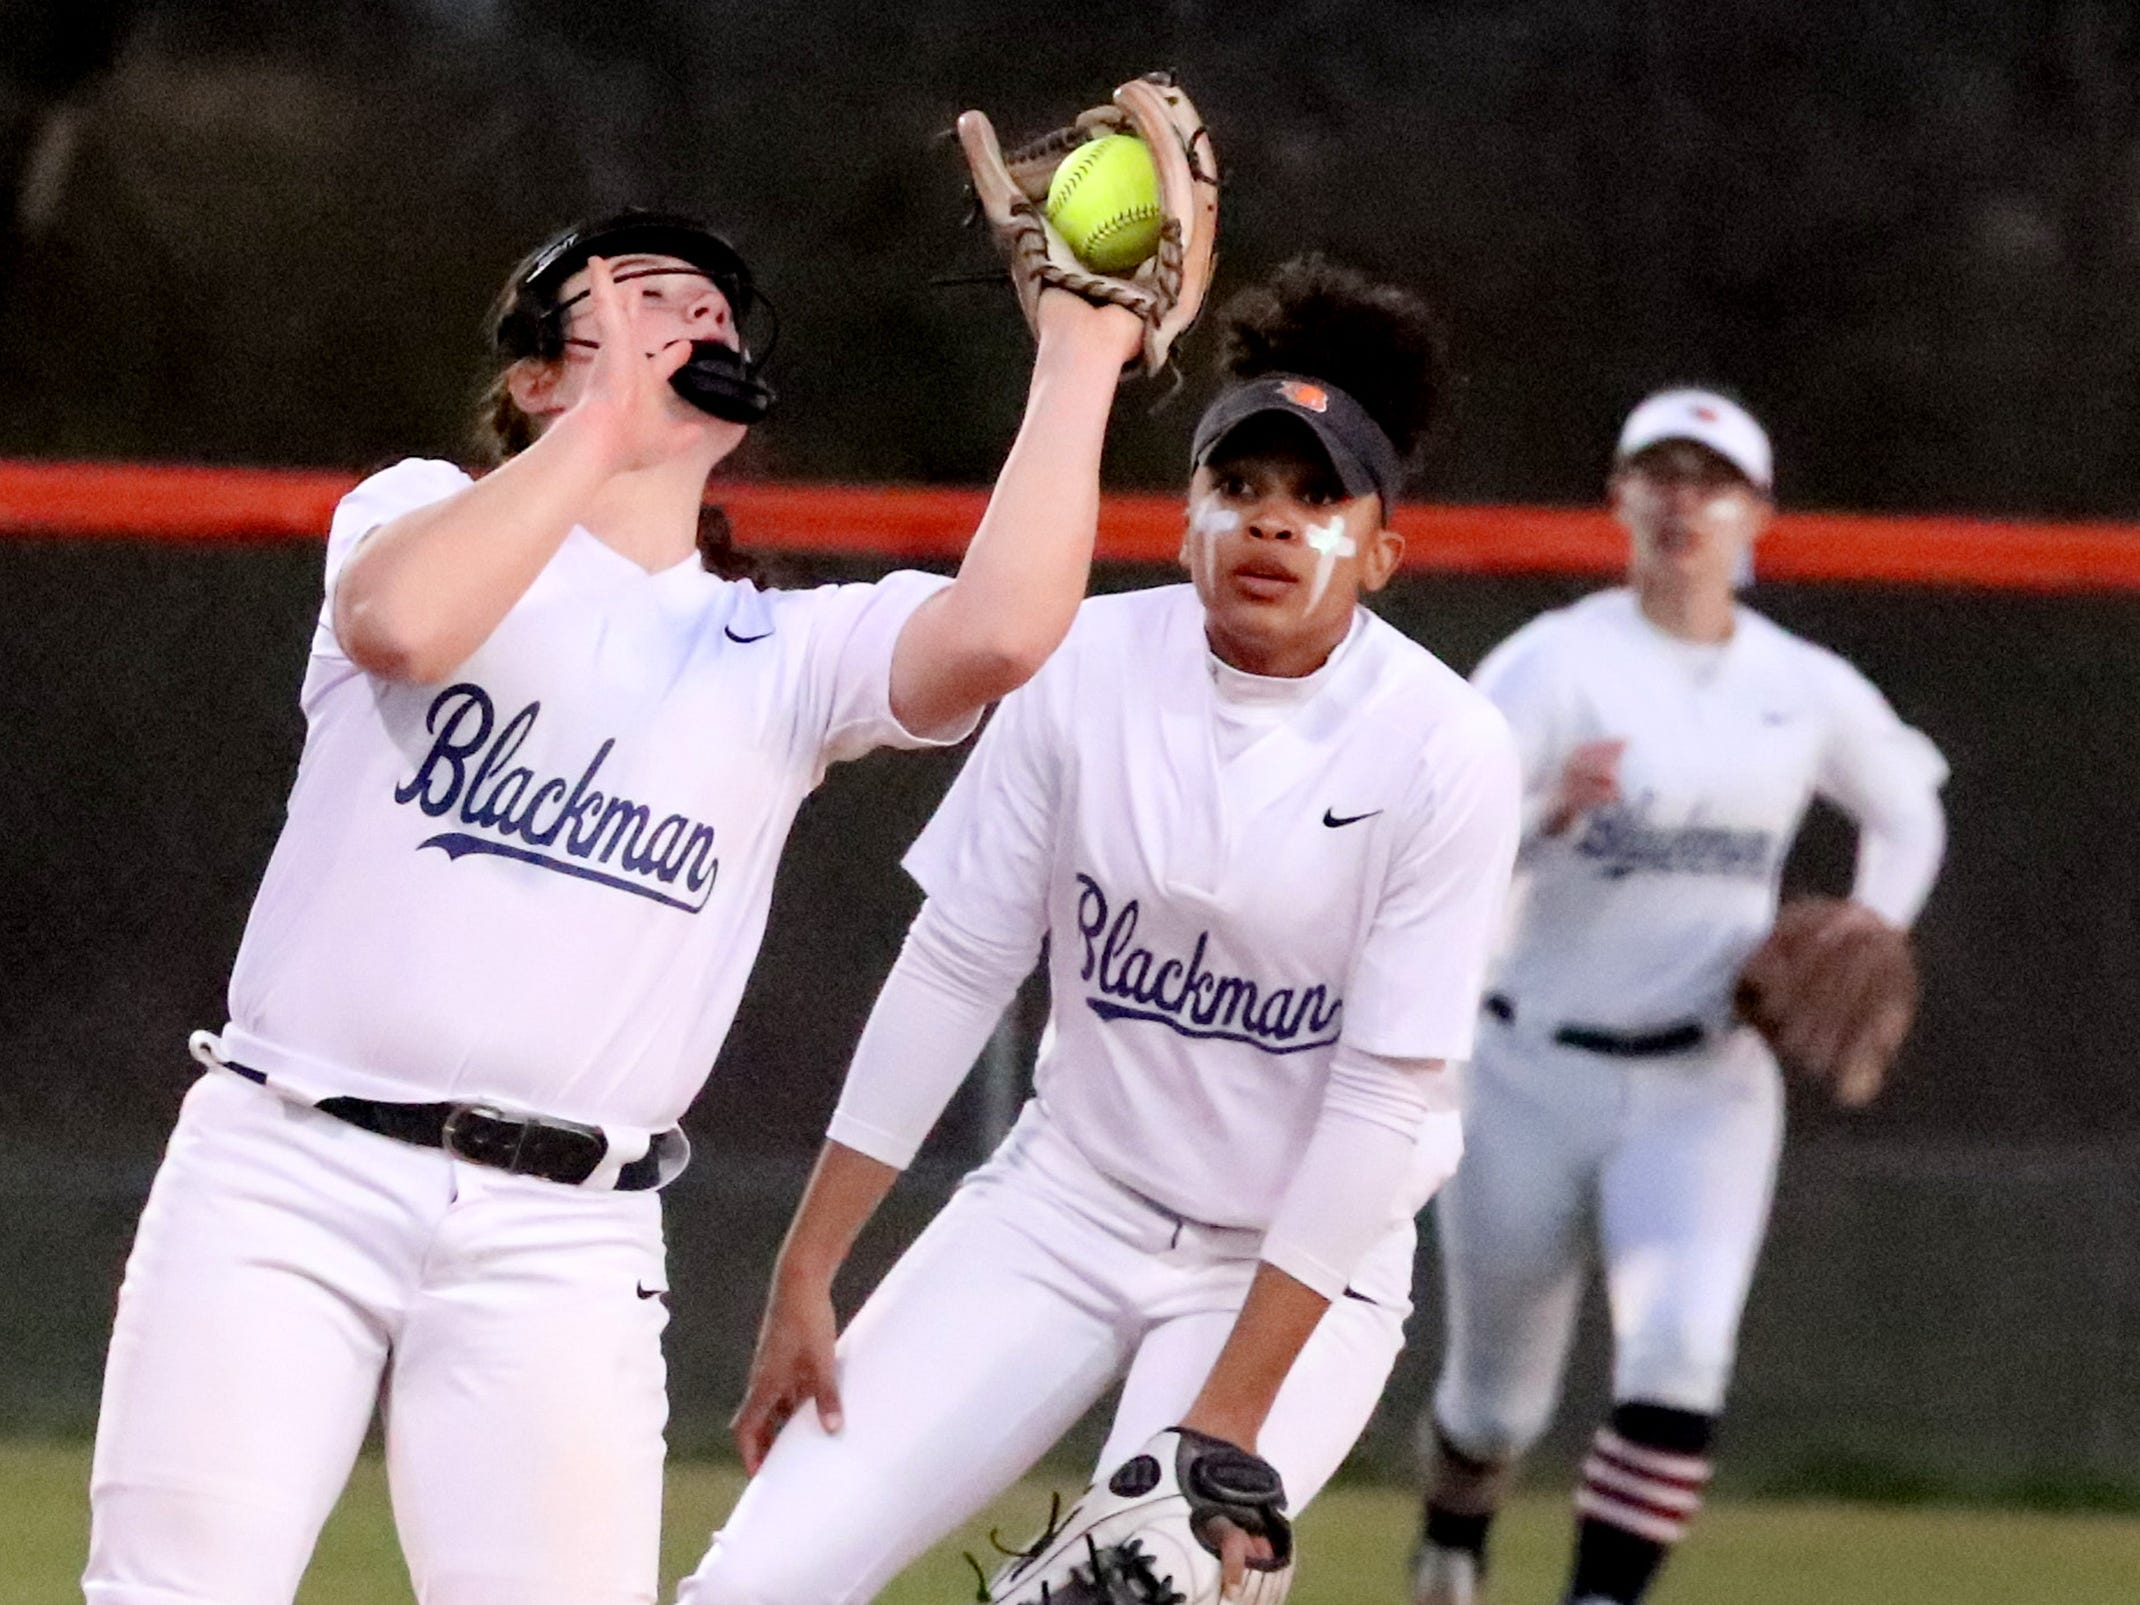 Blackman's Killian Roberts (24) makes a catch  and an out against Siegel, as Blackman's Kalei Harding (8) watches her, on Monday, March 18, 2019, at Blackman.